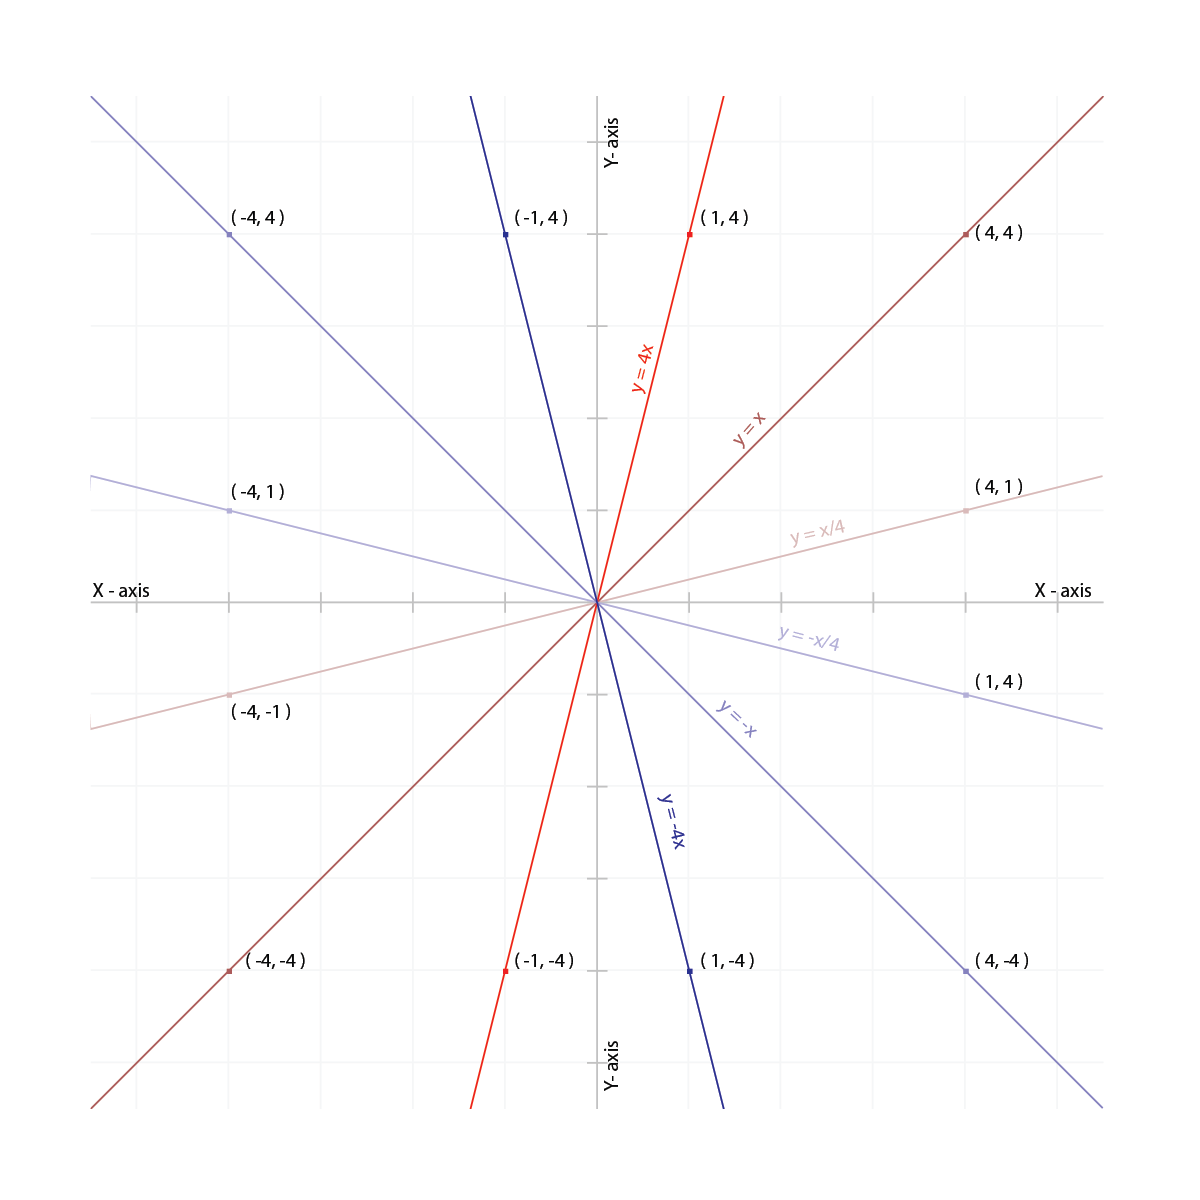 colored lines in shifting hues radiate outwards from the center origin. Various equations label the lines and certain points are plotted